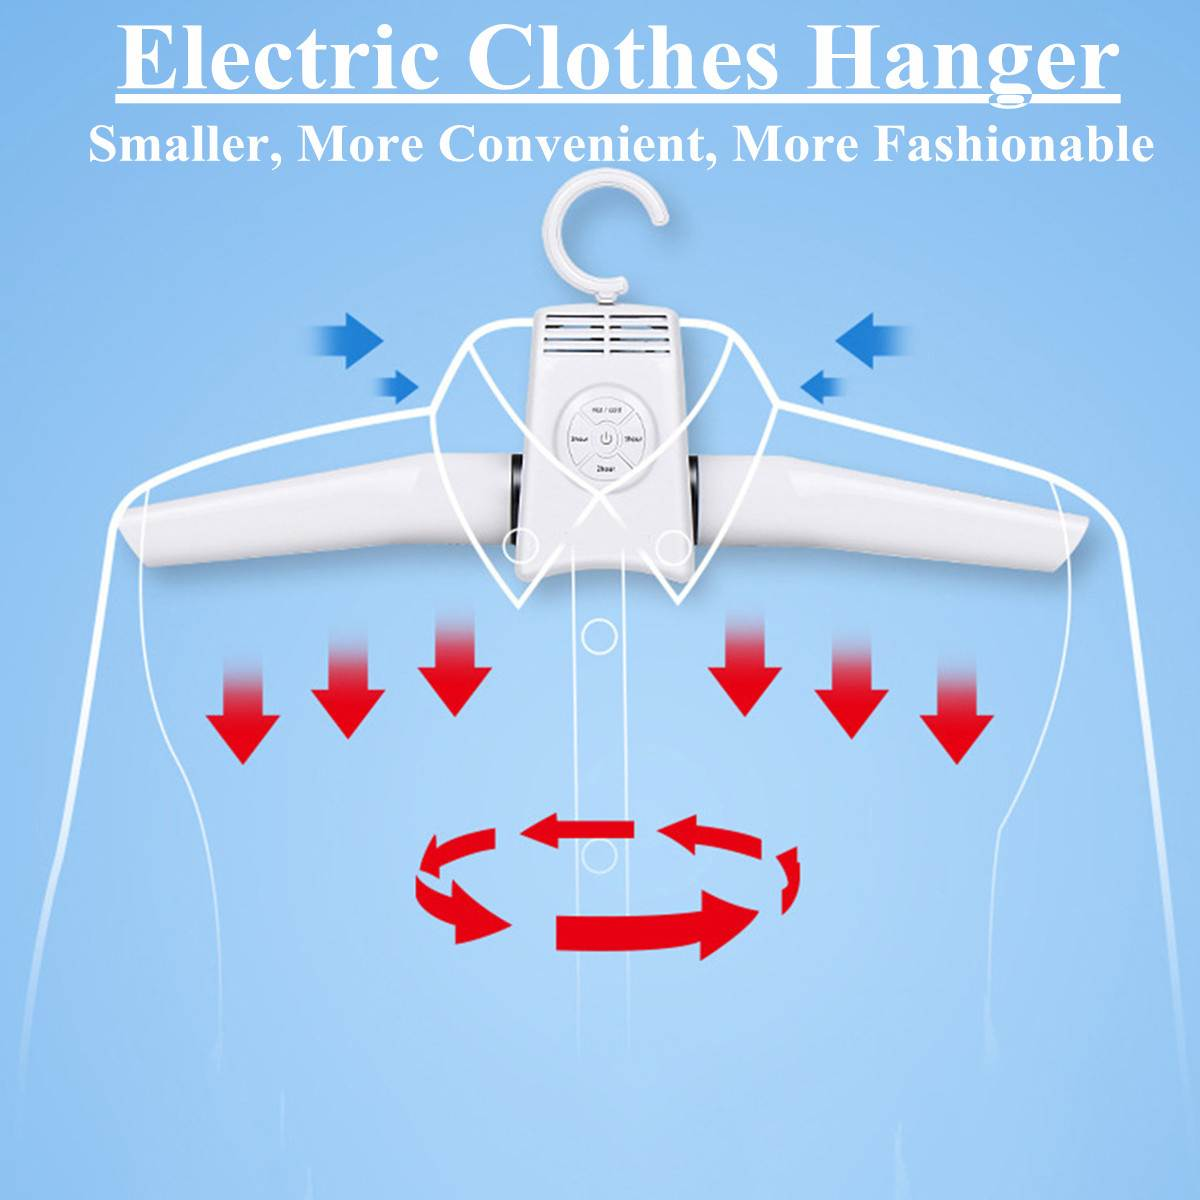 Portable Clothes Hangers Electric Clothes Dryer Smart Shoes Dryer Rack Hot&Cold Dual-use Home Travel Rack Hangers US/EU Plug